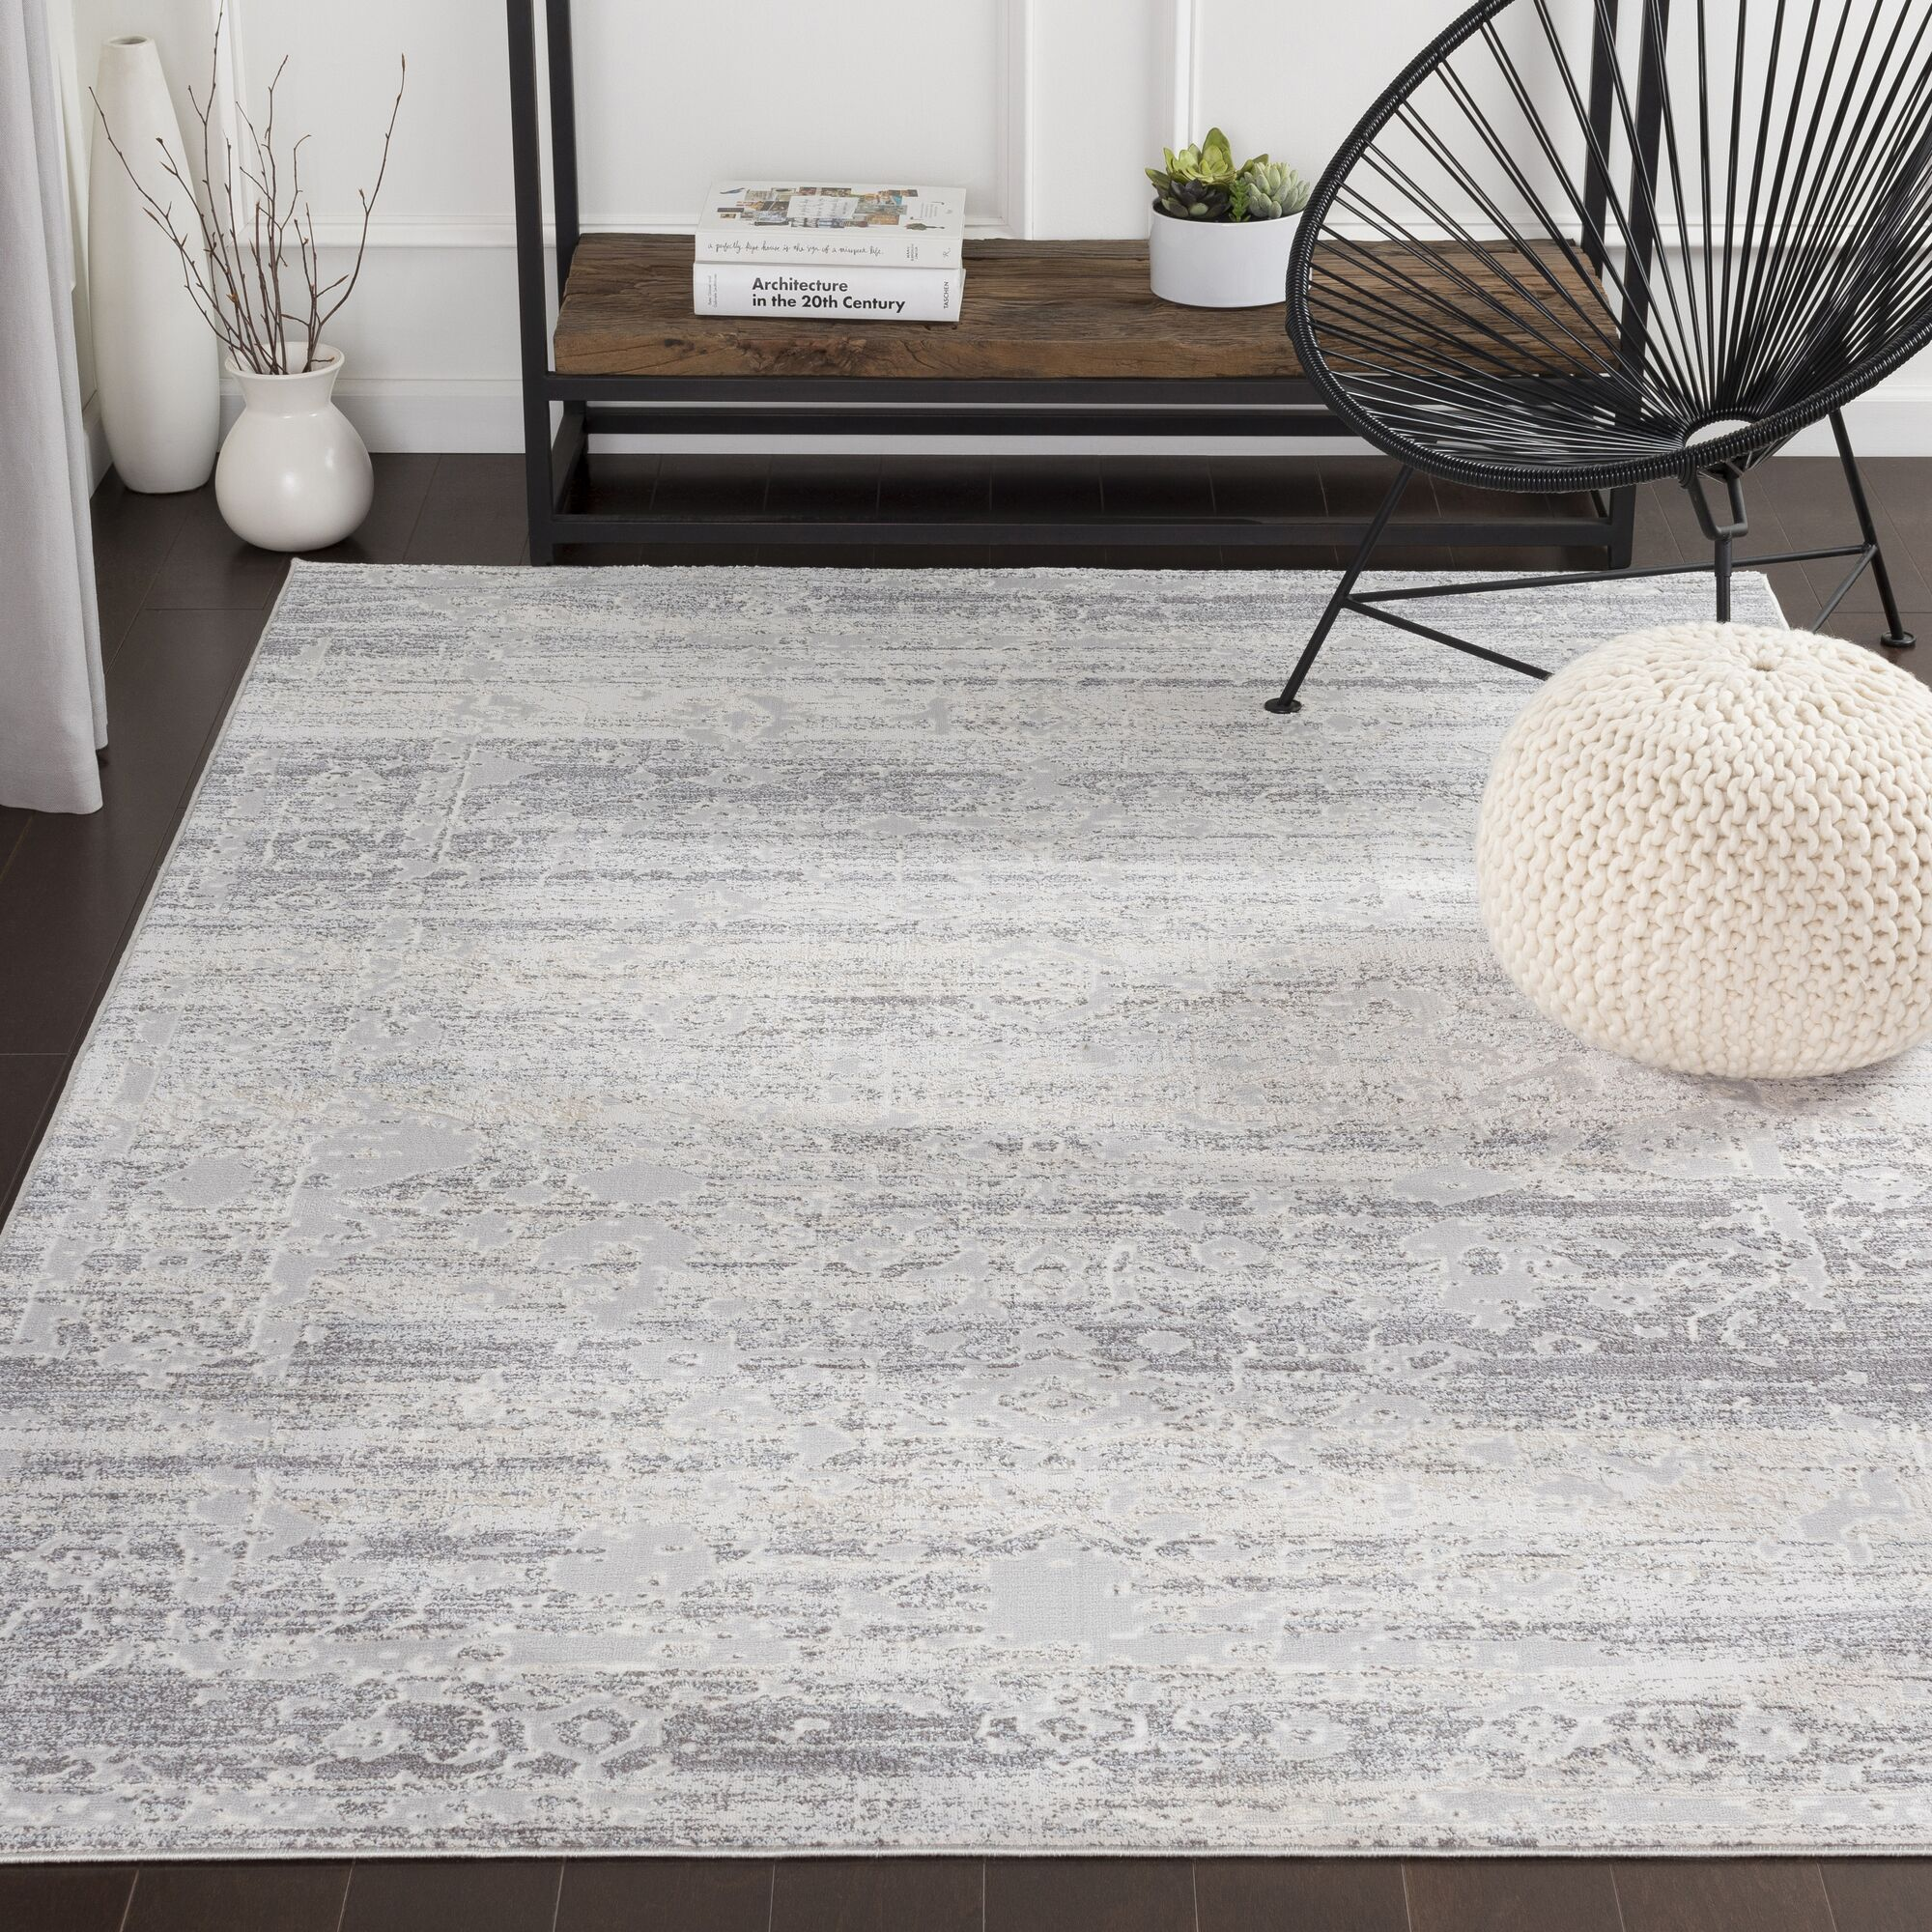 Heger Distressed Silver Gray/White Area Rug Rug Size: Rectangle 9'3